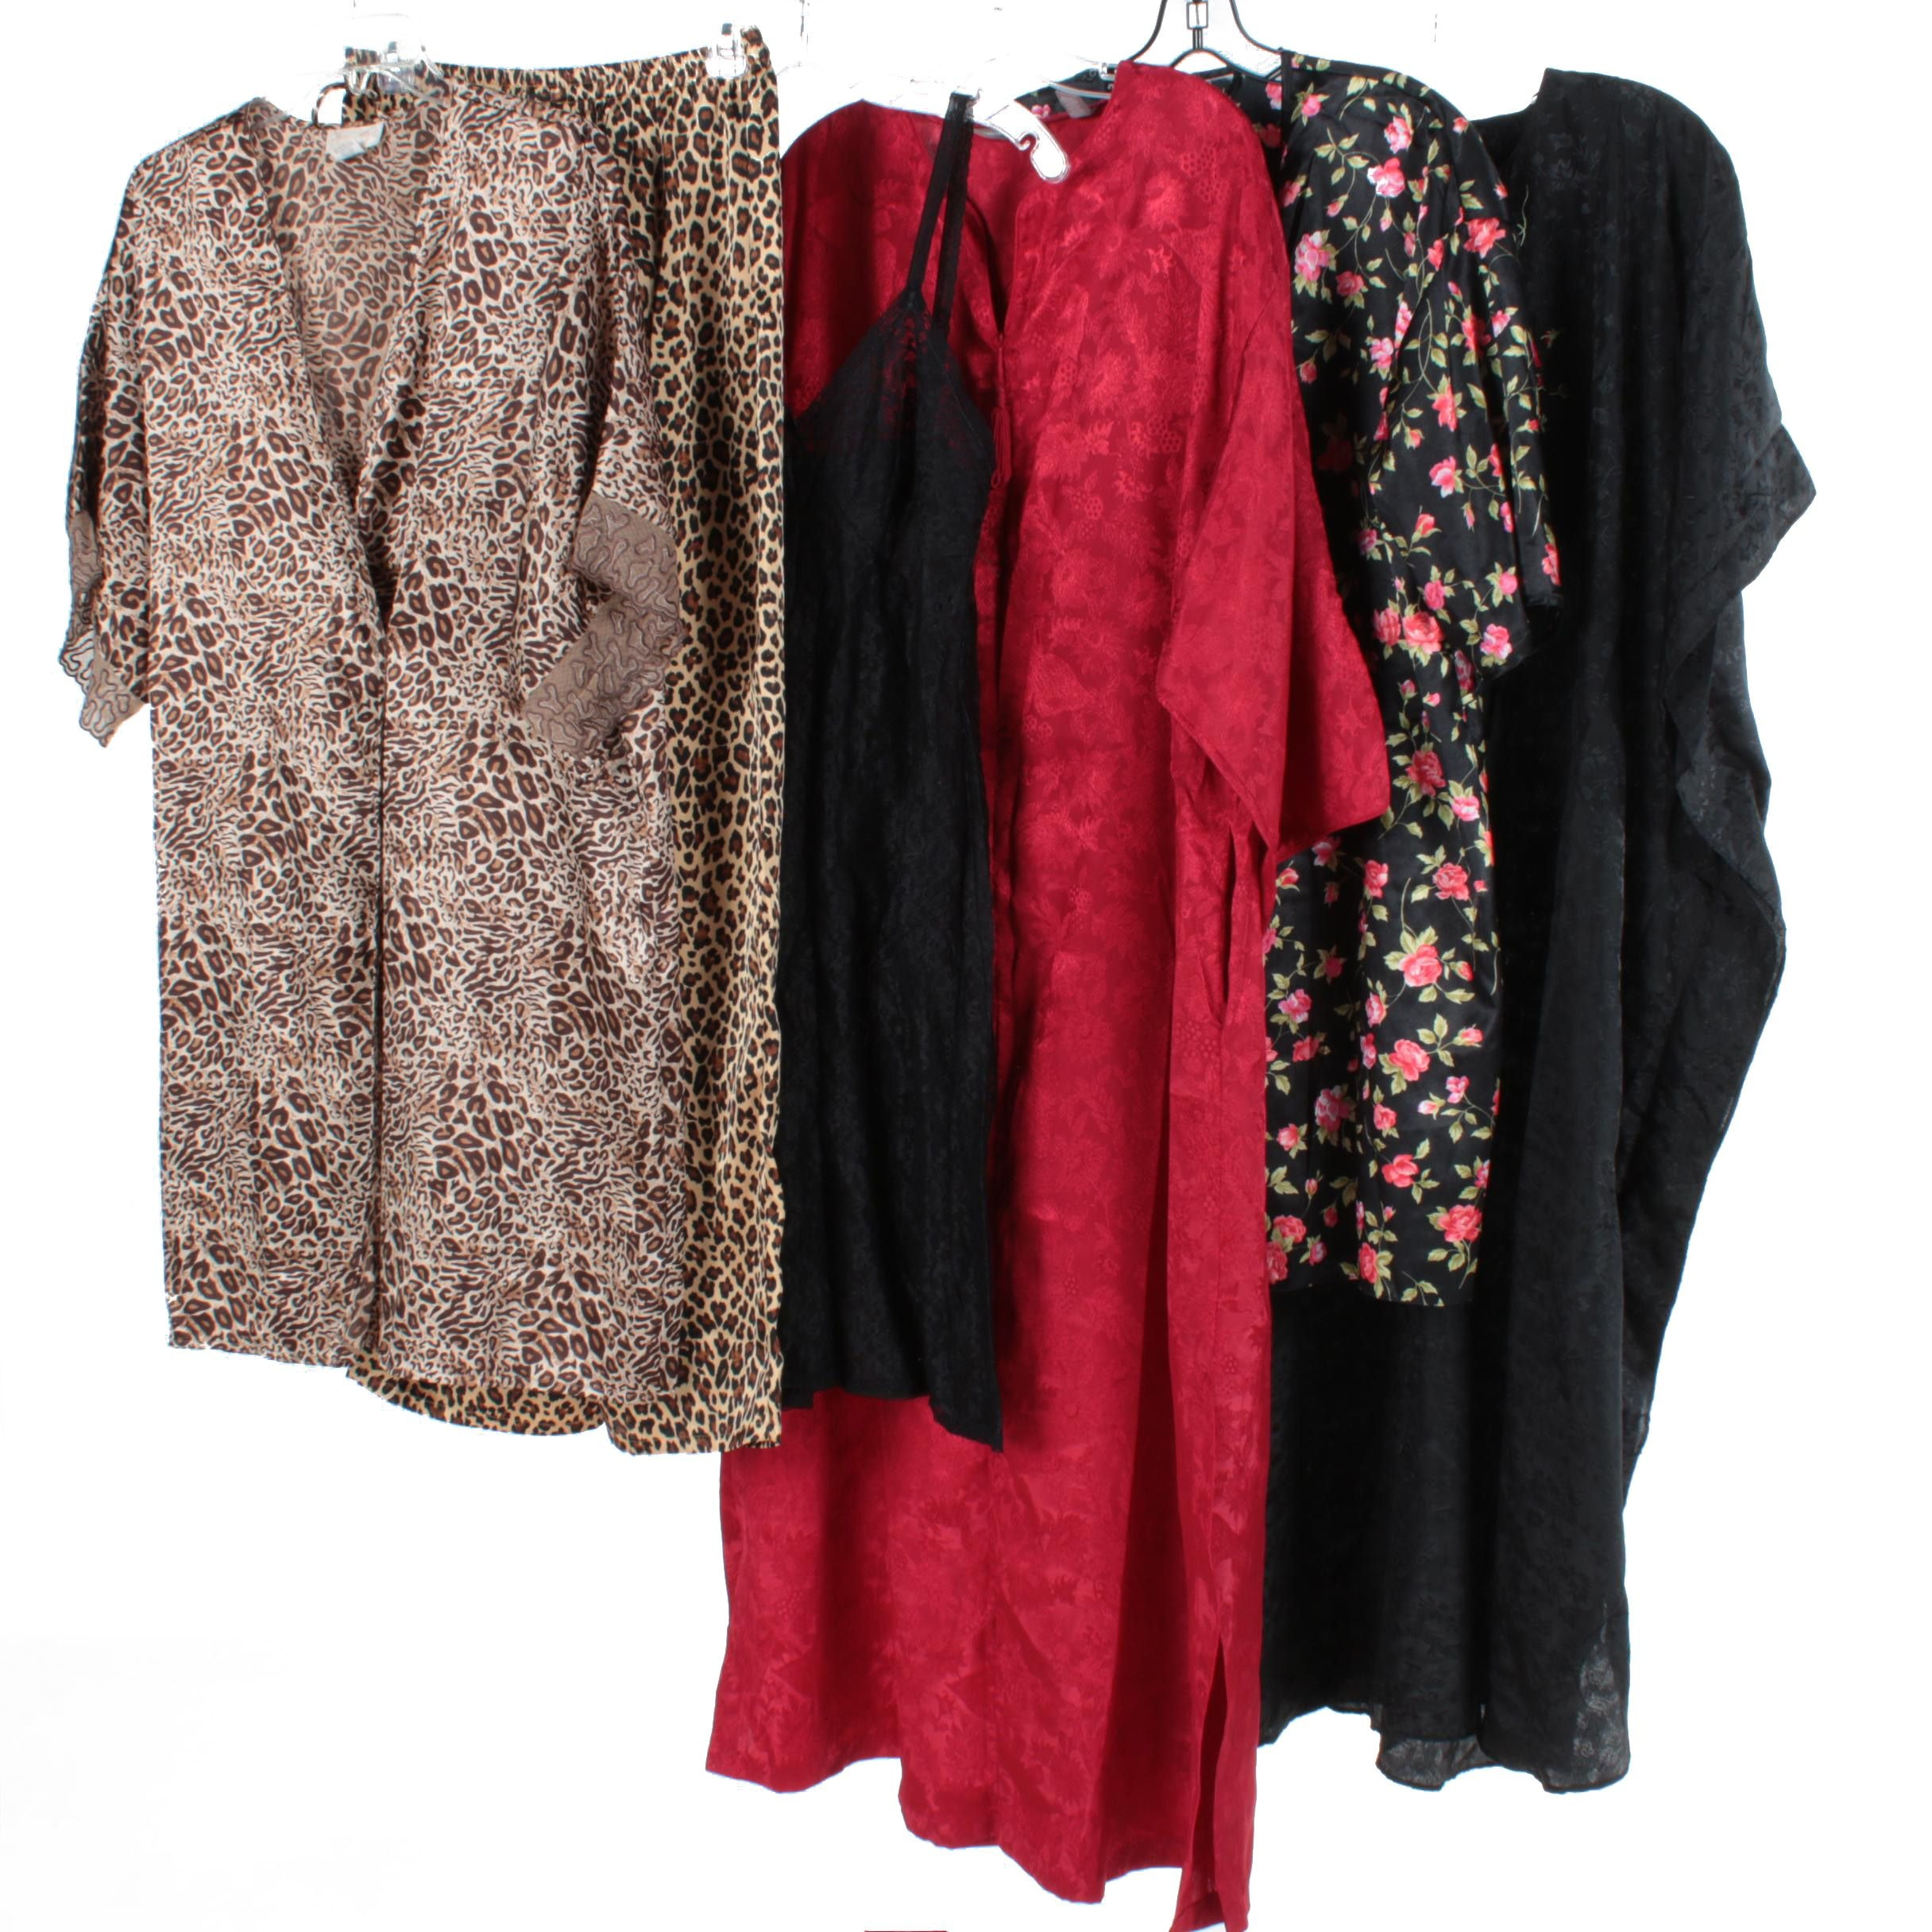 Women's Sleepwear and Loungewear